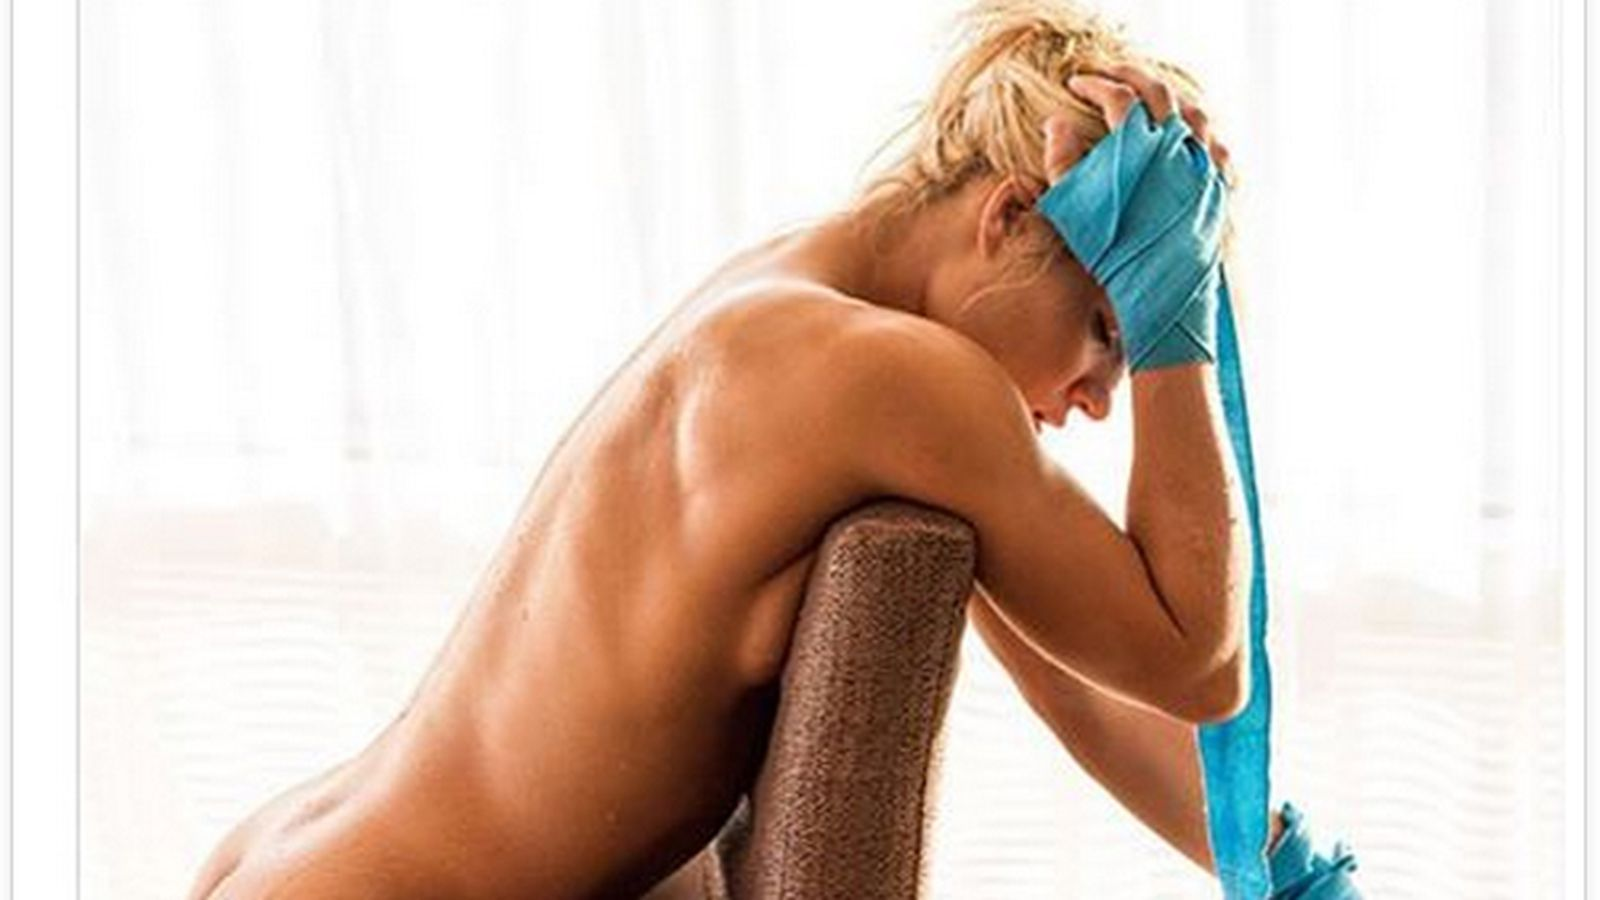 Pic: UFC strawweight Felice Herrig gets naked for Muscle ...